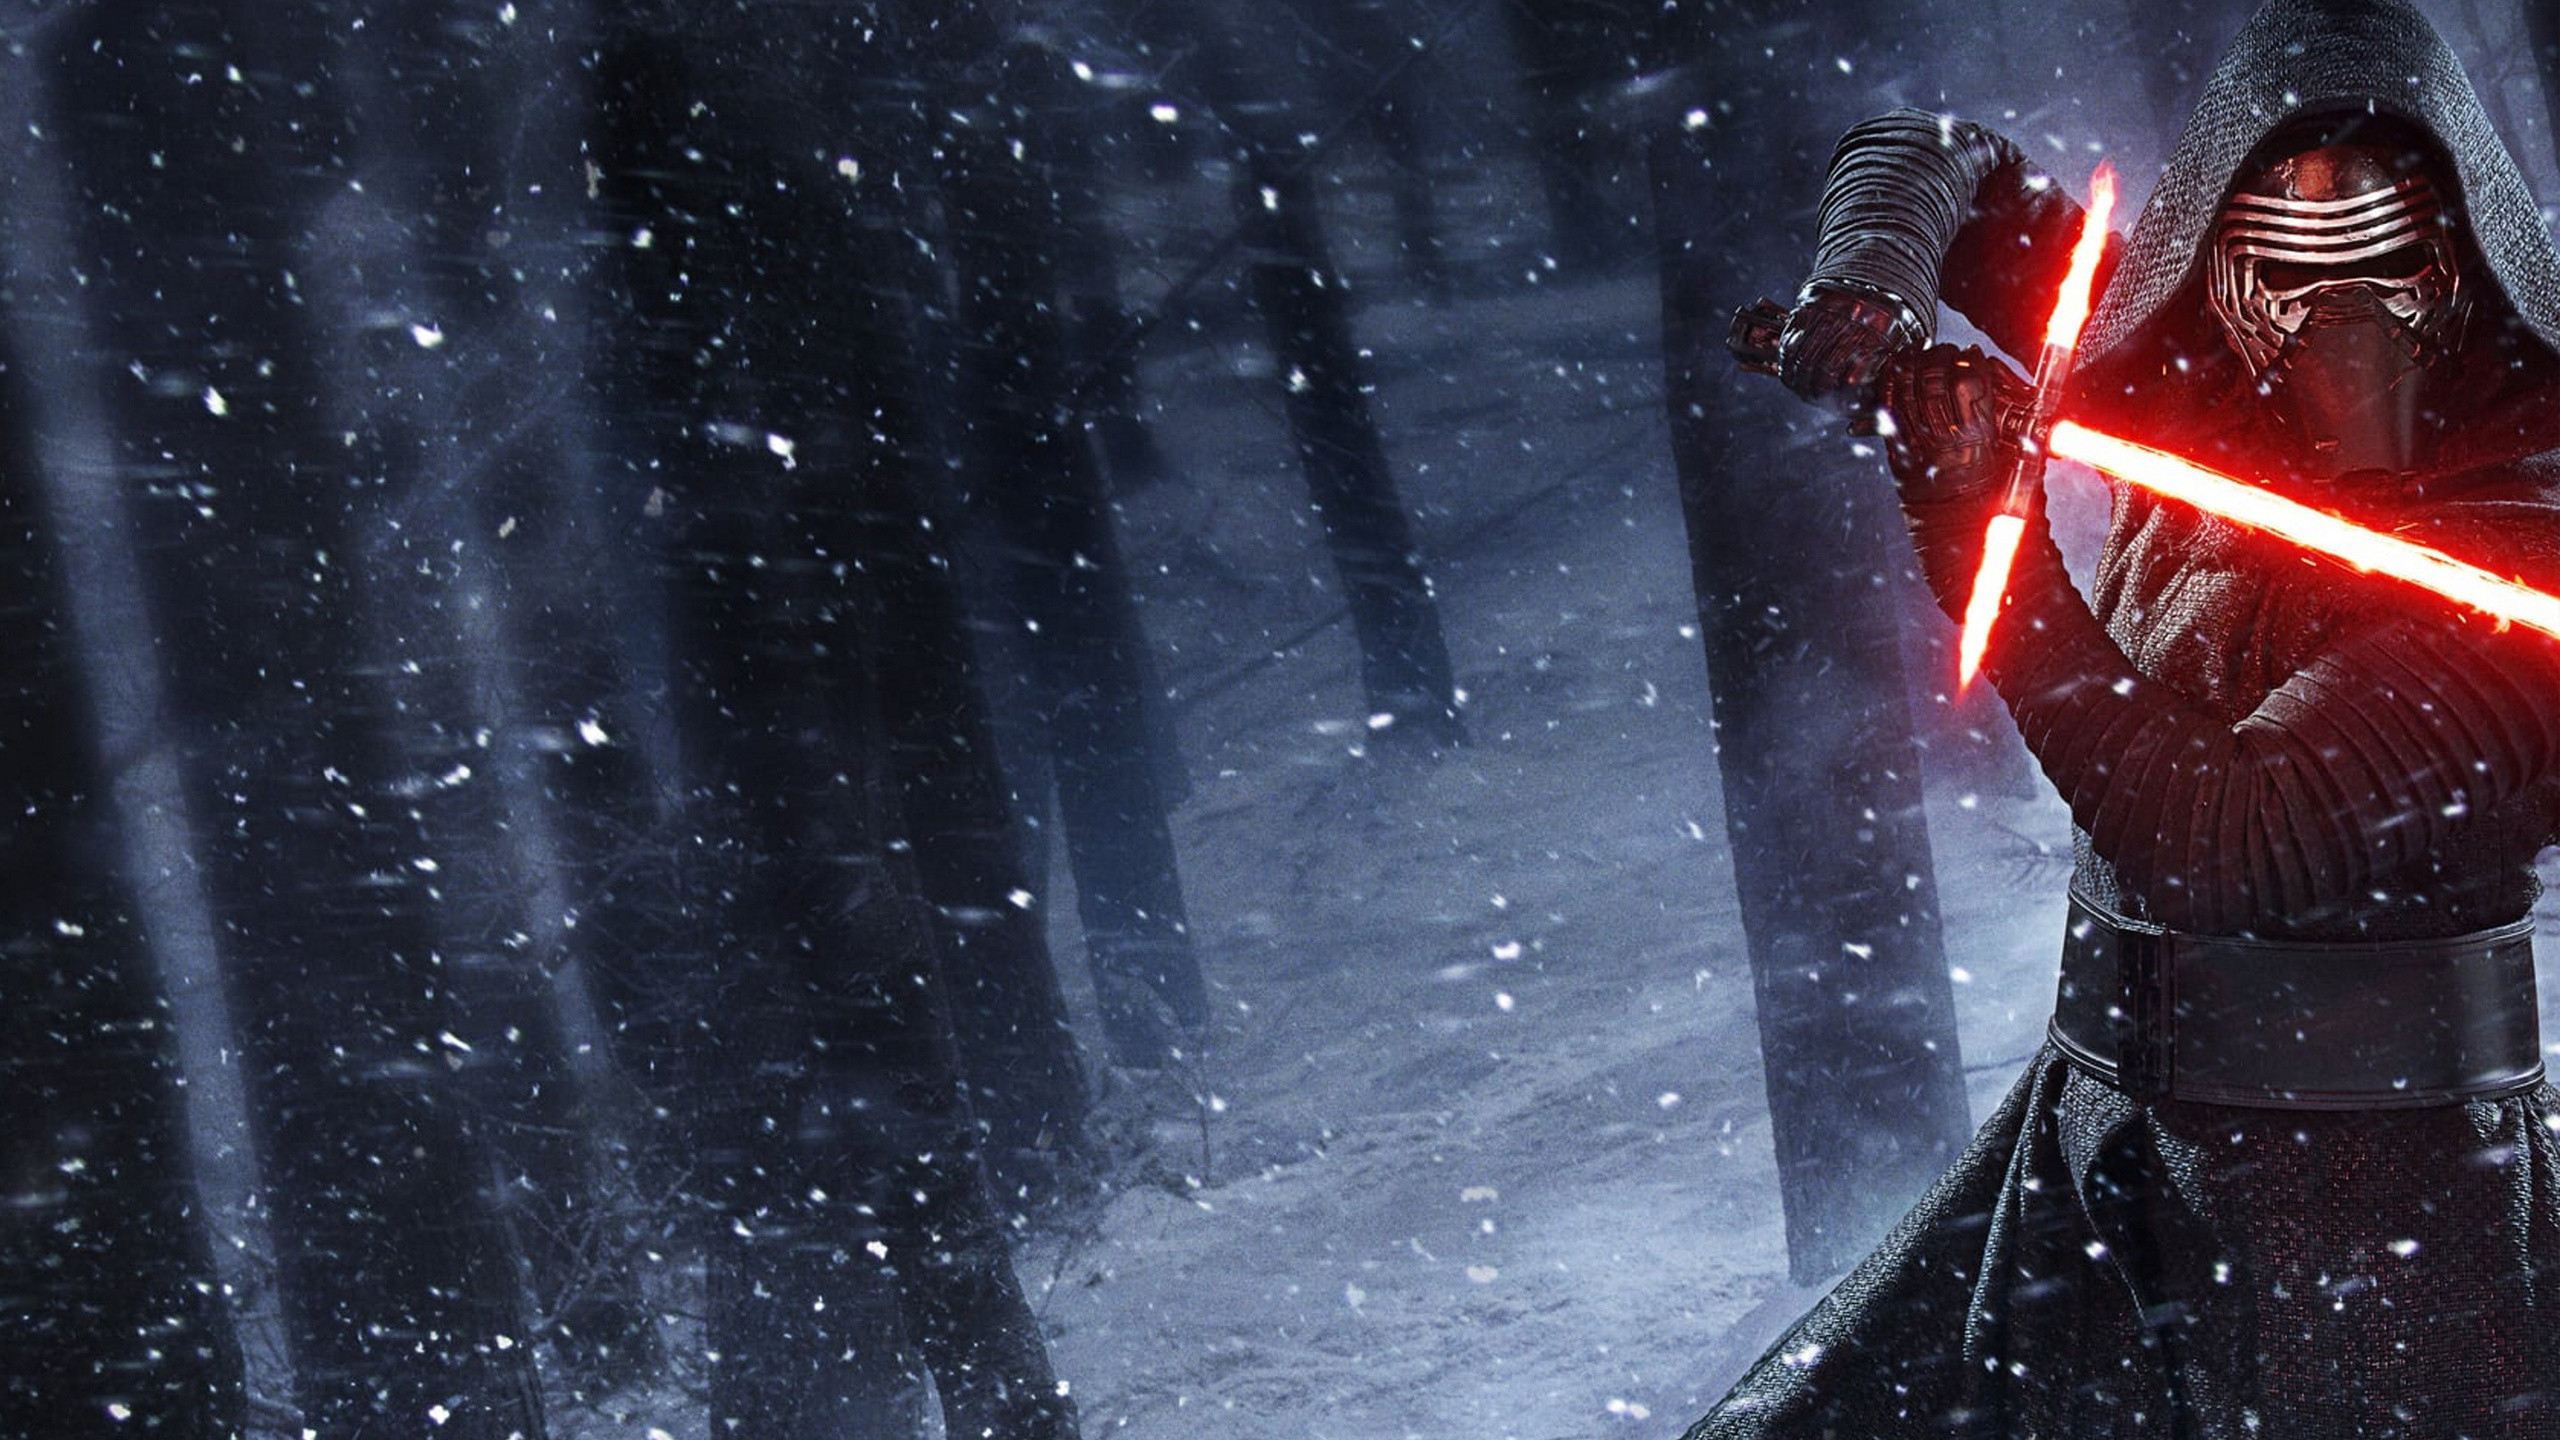 Star Wars Force Awakens Wallpapers 73 Images